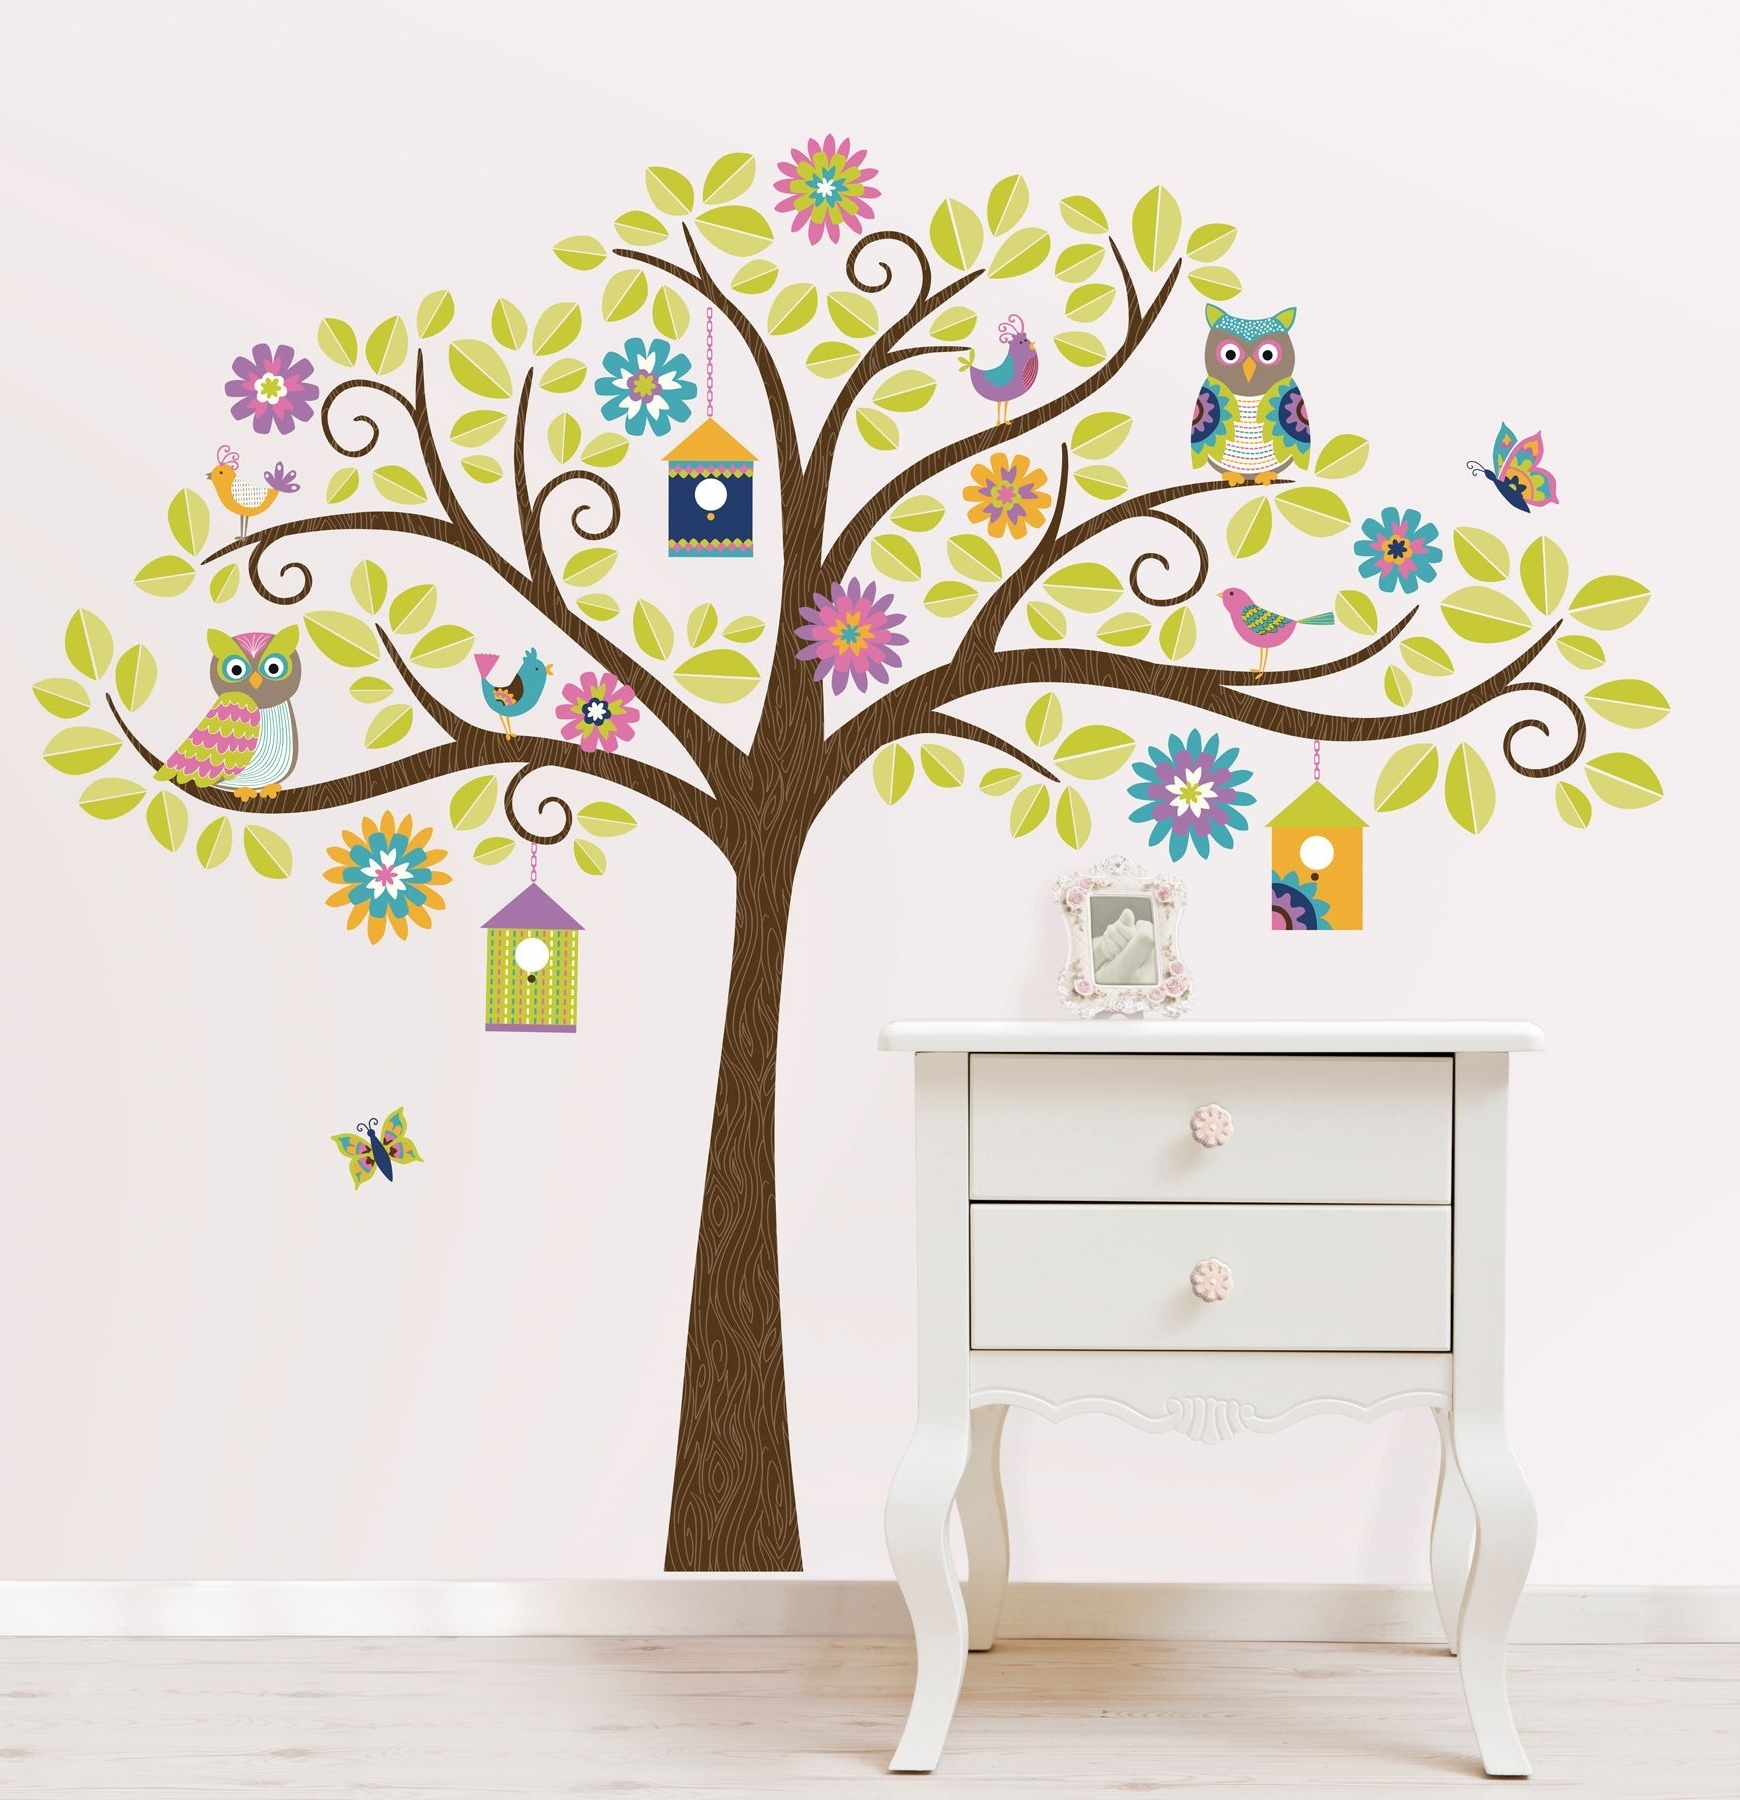 2018 Tree Wall Art Intended For Hoot And Hang Out Tree Wall Art Sticker Kit (Gallery 11 of 15)